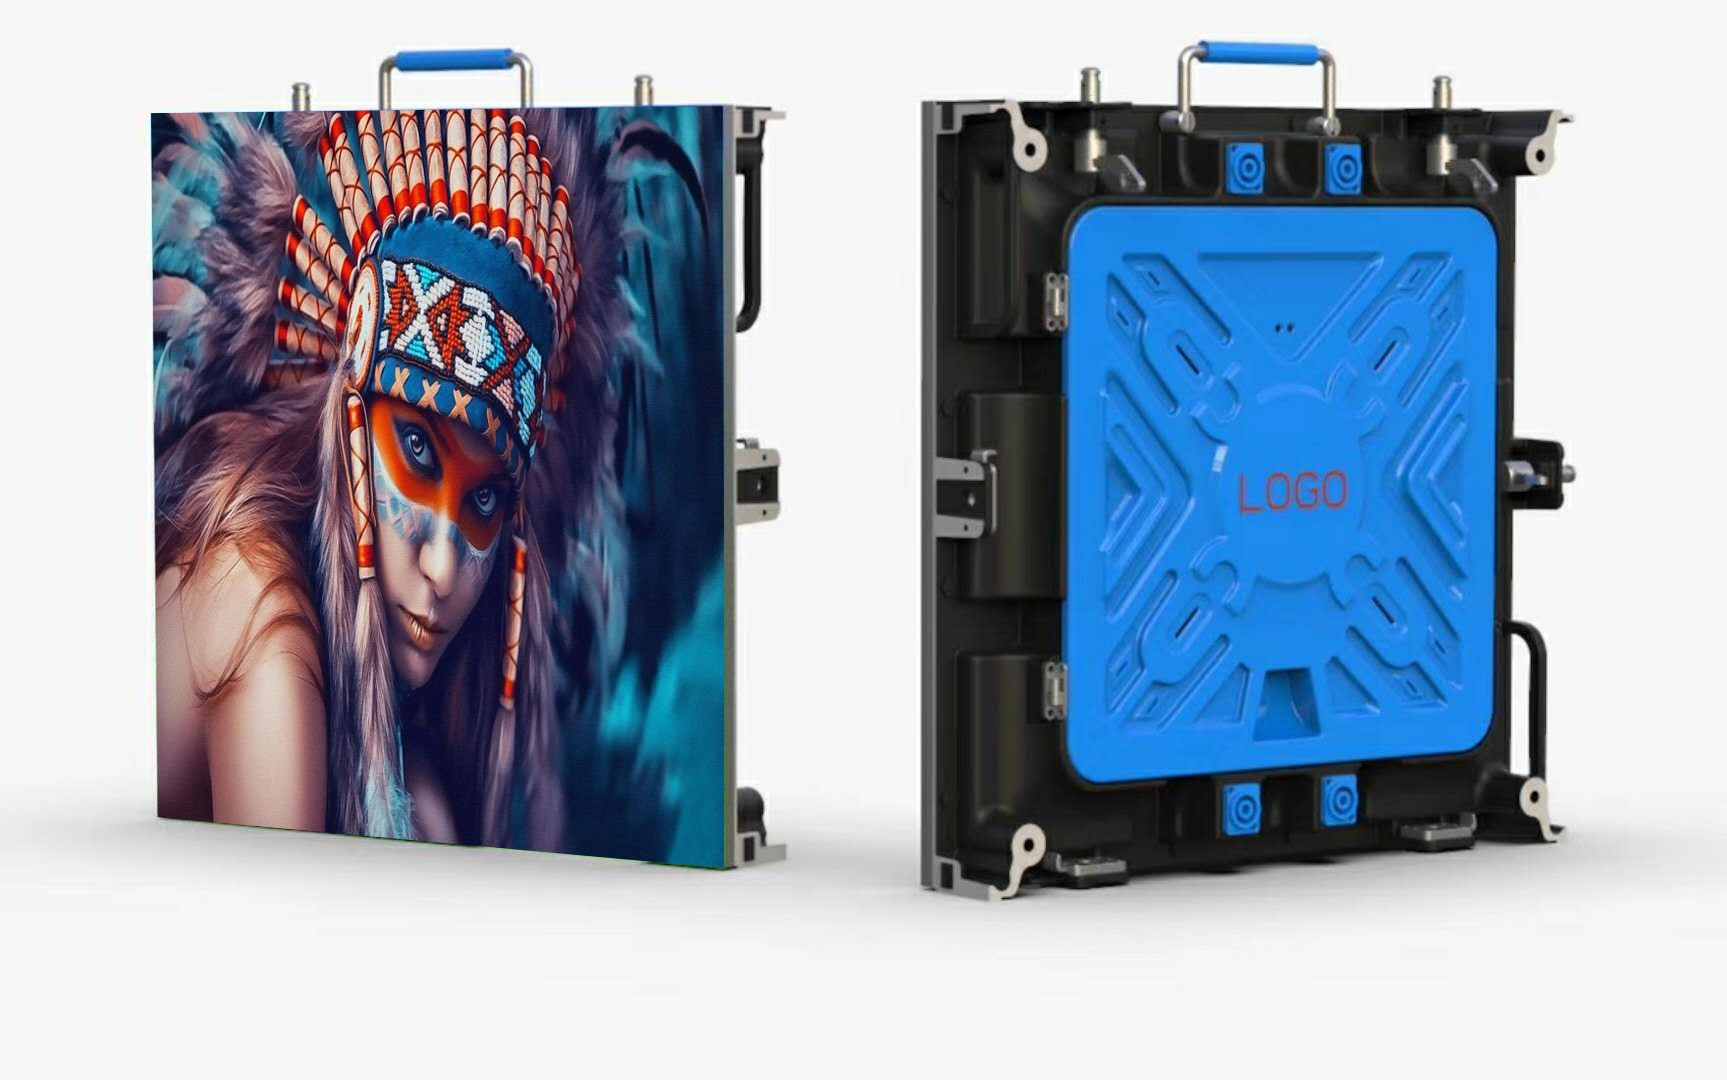 HD P1.56 indoor led display screen Manufacturers, HD P1.56 indoor led display screen Factory, Supply HD P1.56 indoor led display screen